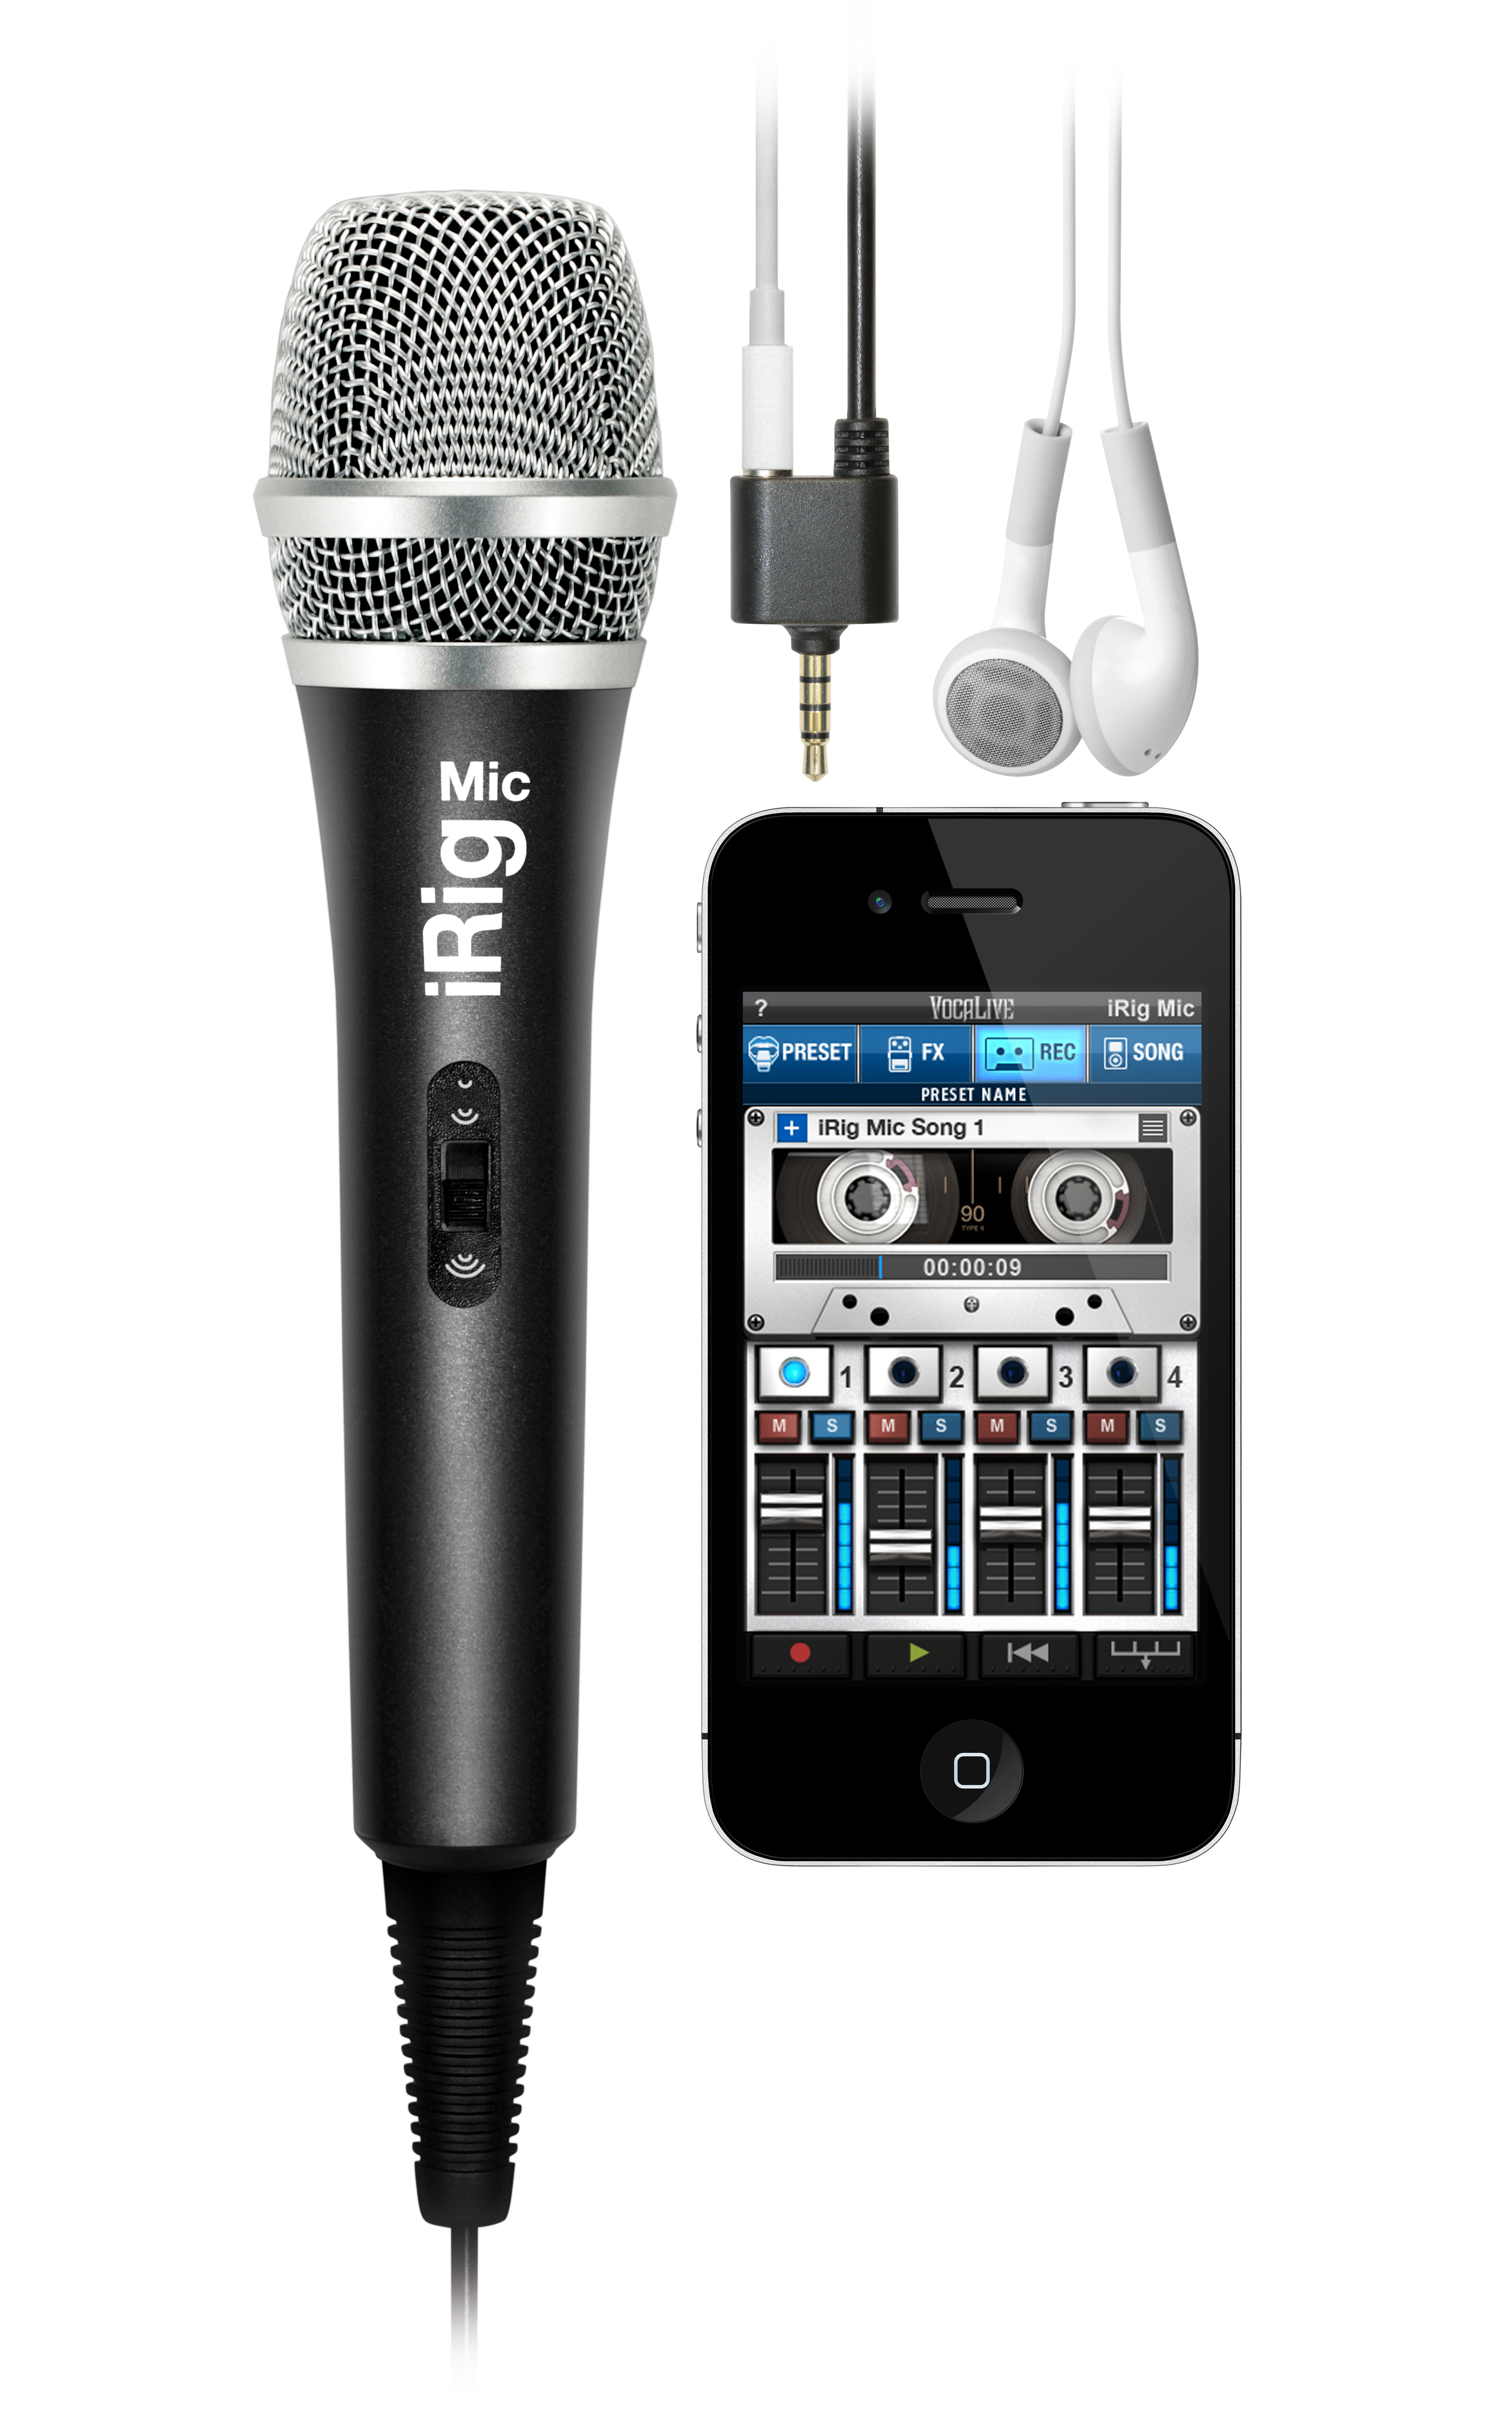 NAMM 2012: IK Multimedia's iRig line offers mobile recording solutions